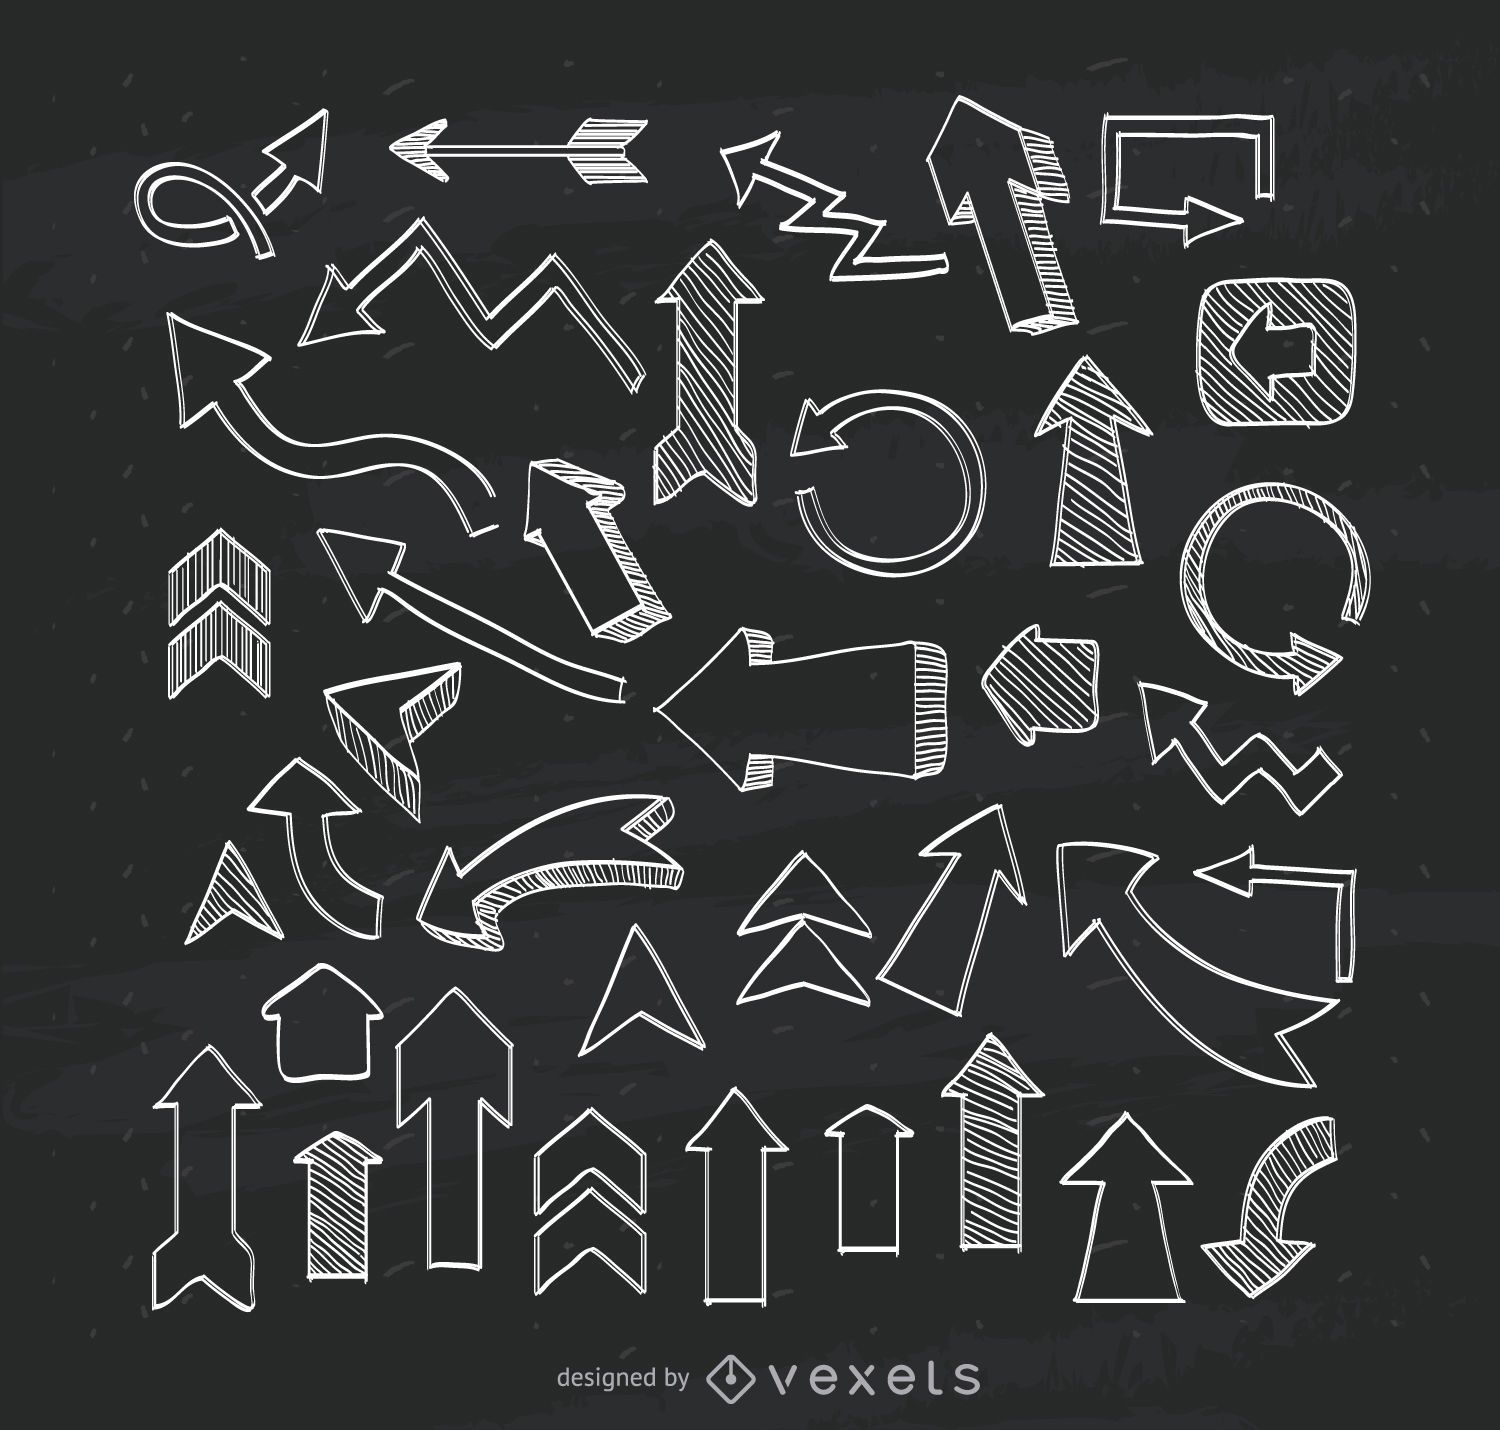 Illustrated arrows collection